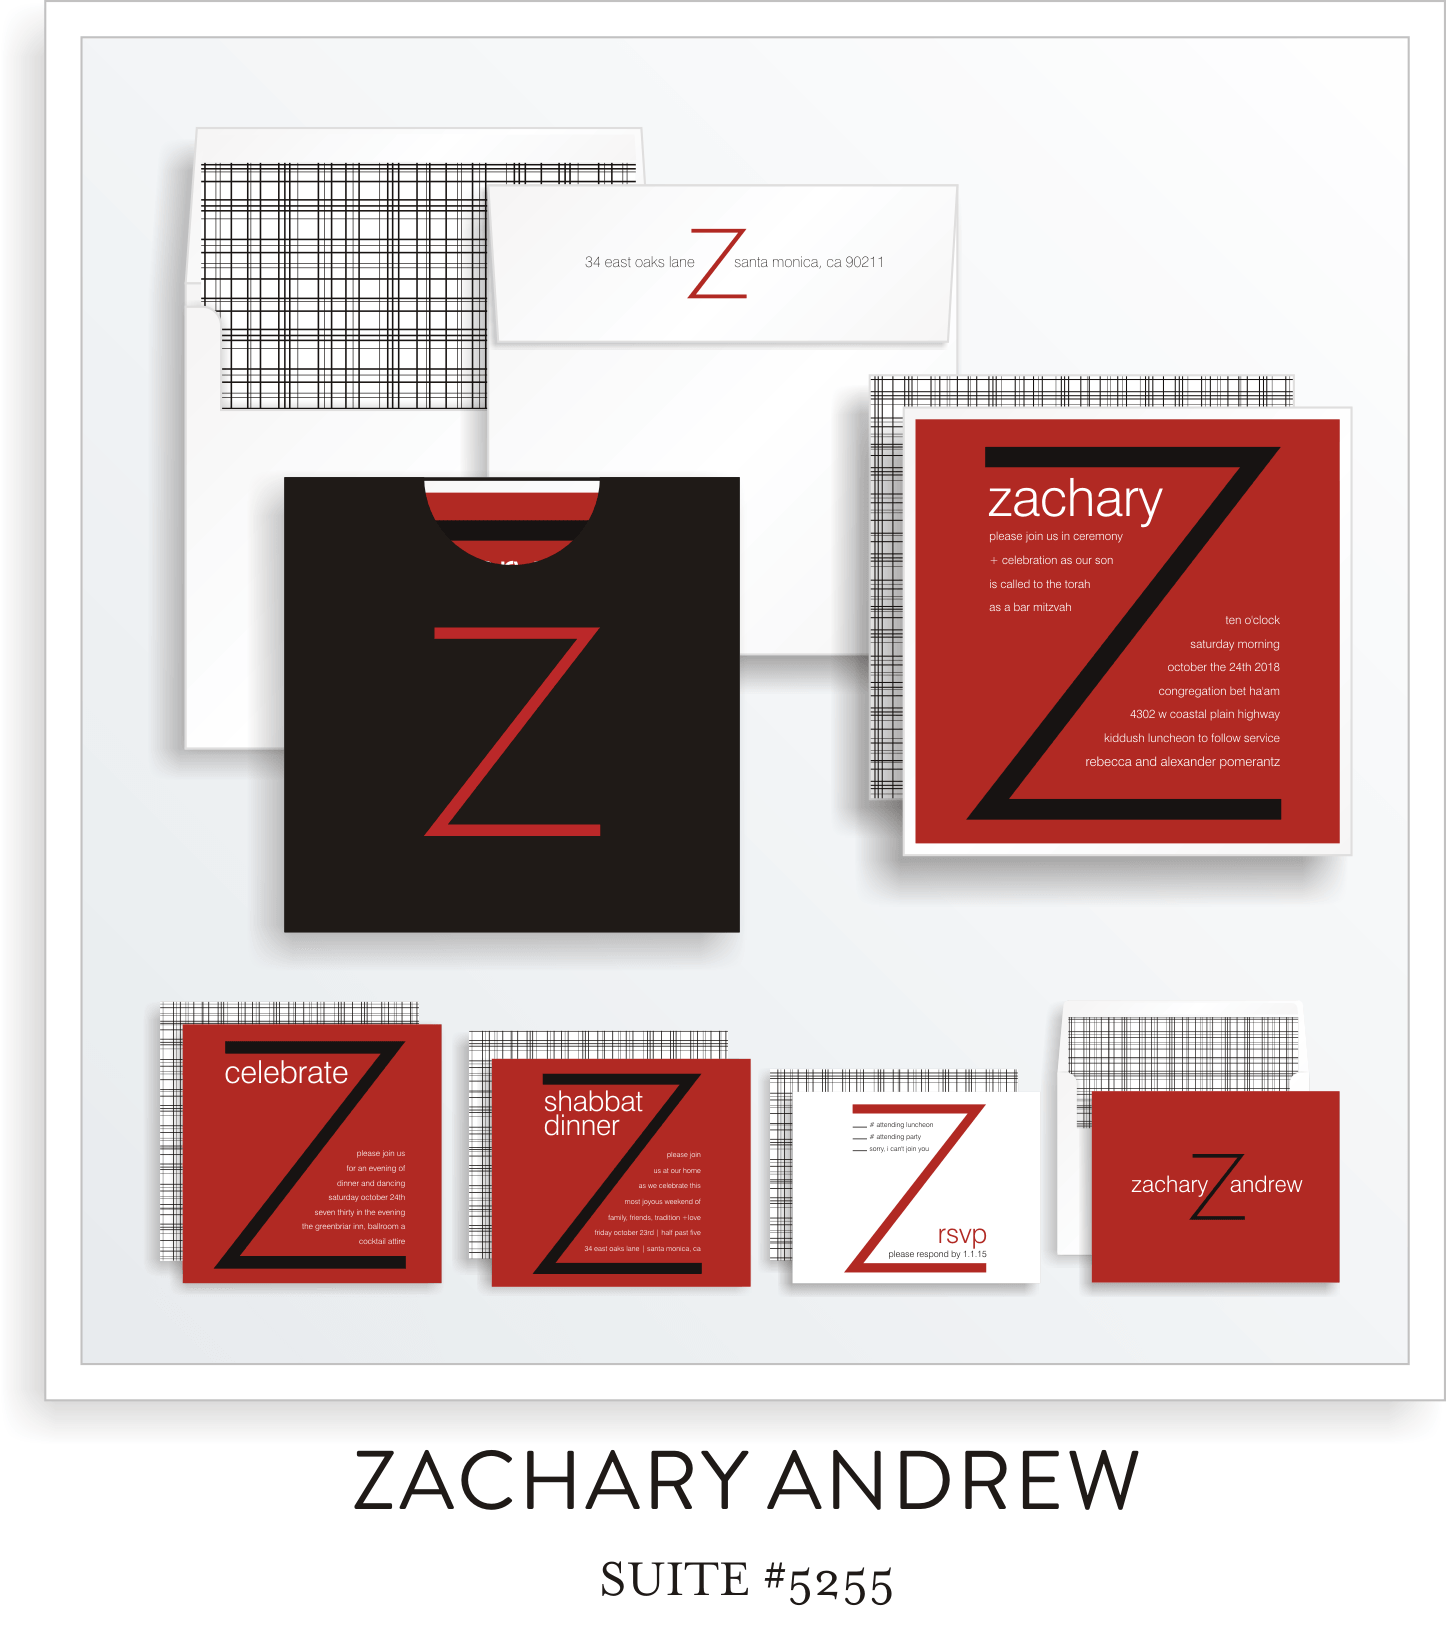 Copy of Bar Mitzvah Invitation Suite 5255 - Zachary Andrew